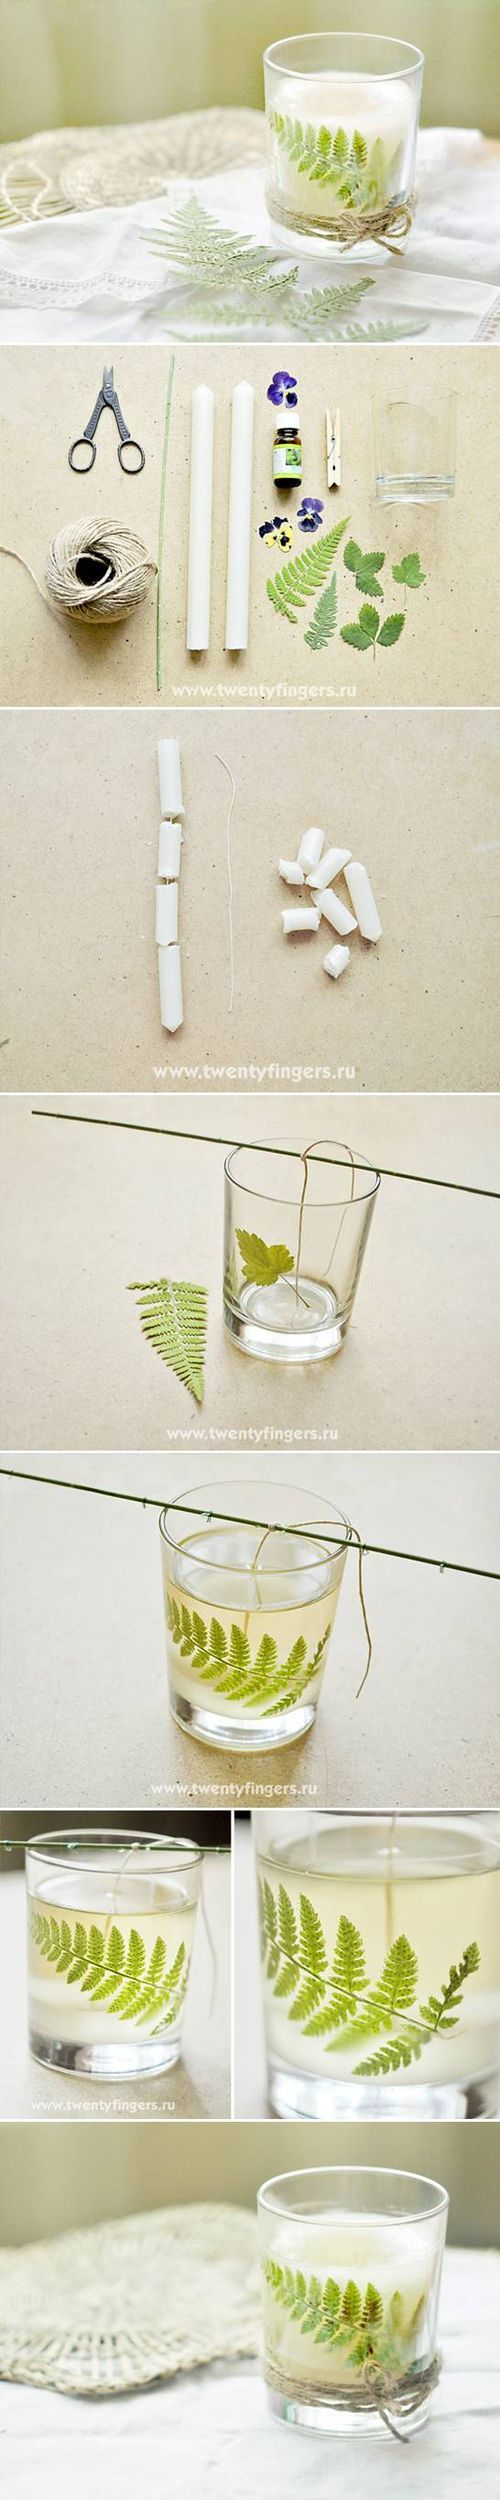 DIY Smell of the Forest Candle DIY Projects / UsefulDIY.com